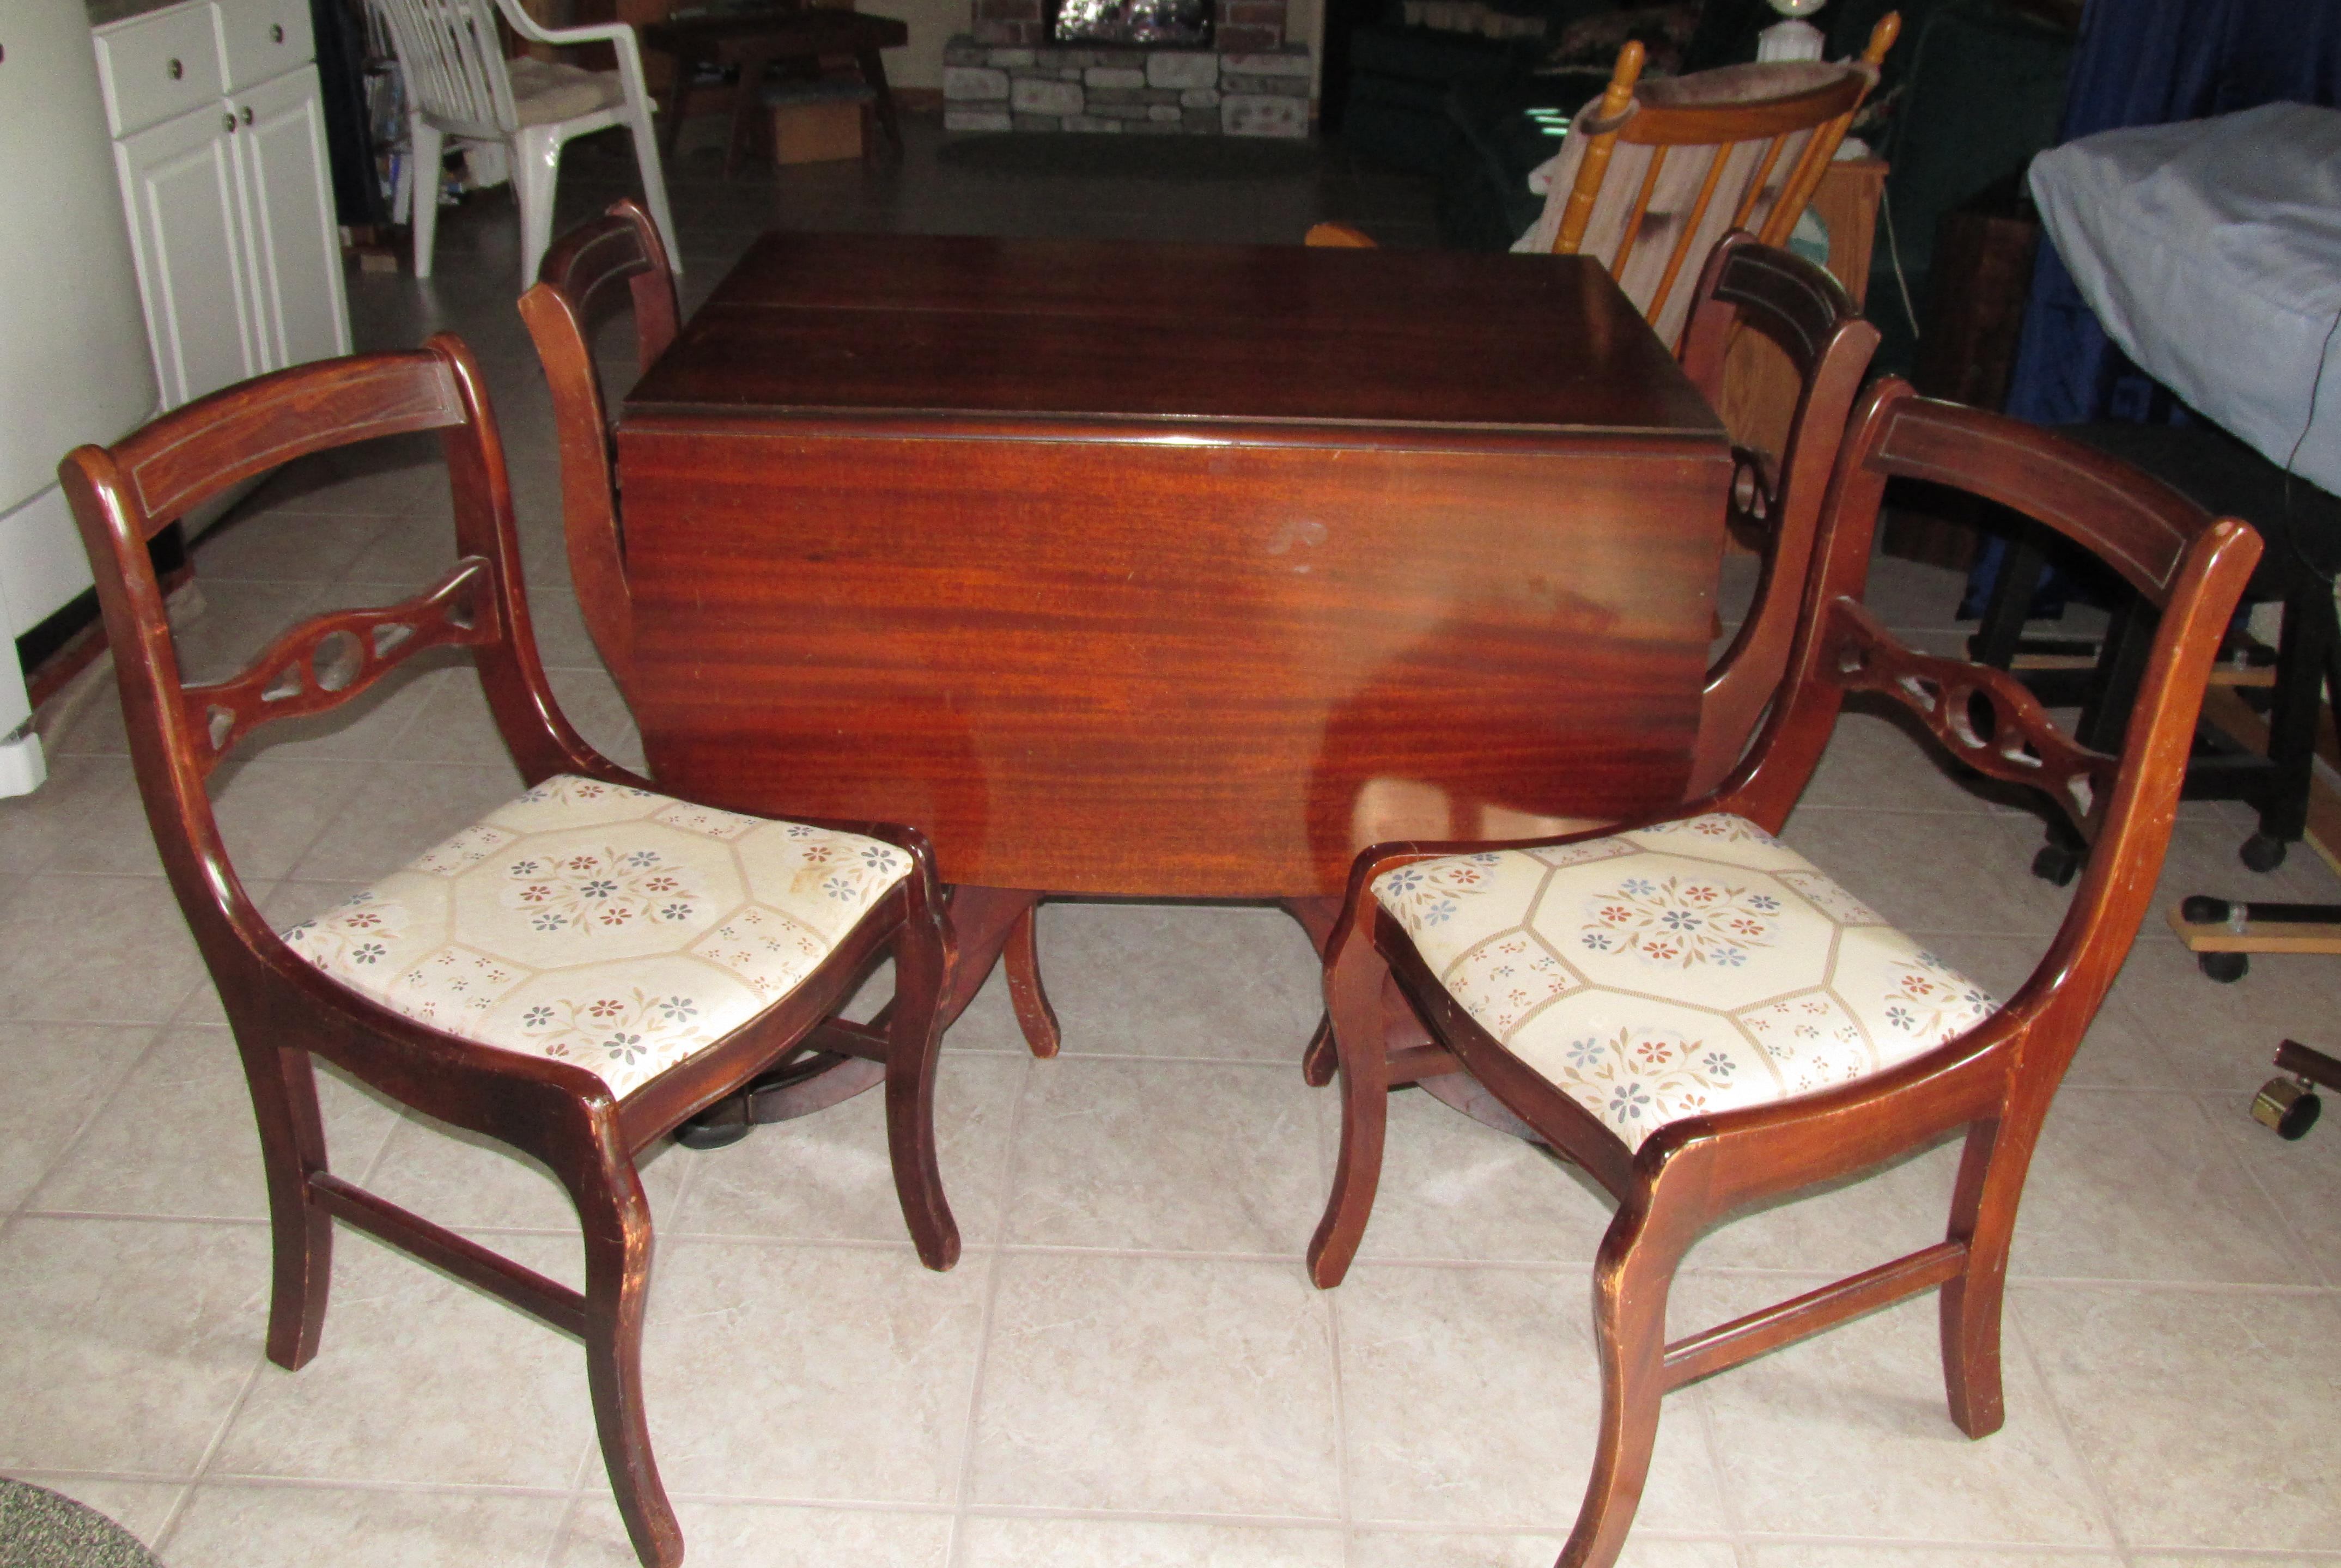 Vintage  Double Drop leaf Table and chair setVintage  Double Drop leaf Table and chair set antique appraisal  . Antique Drop Leaf Dining Table Set. Home Design Ideas